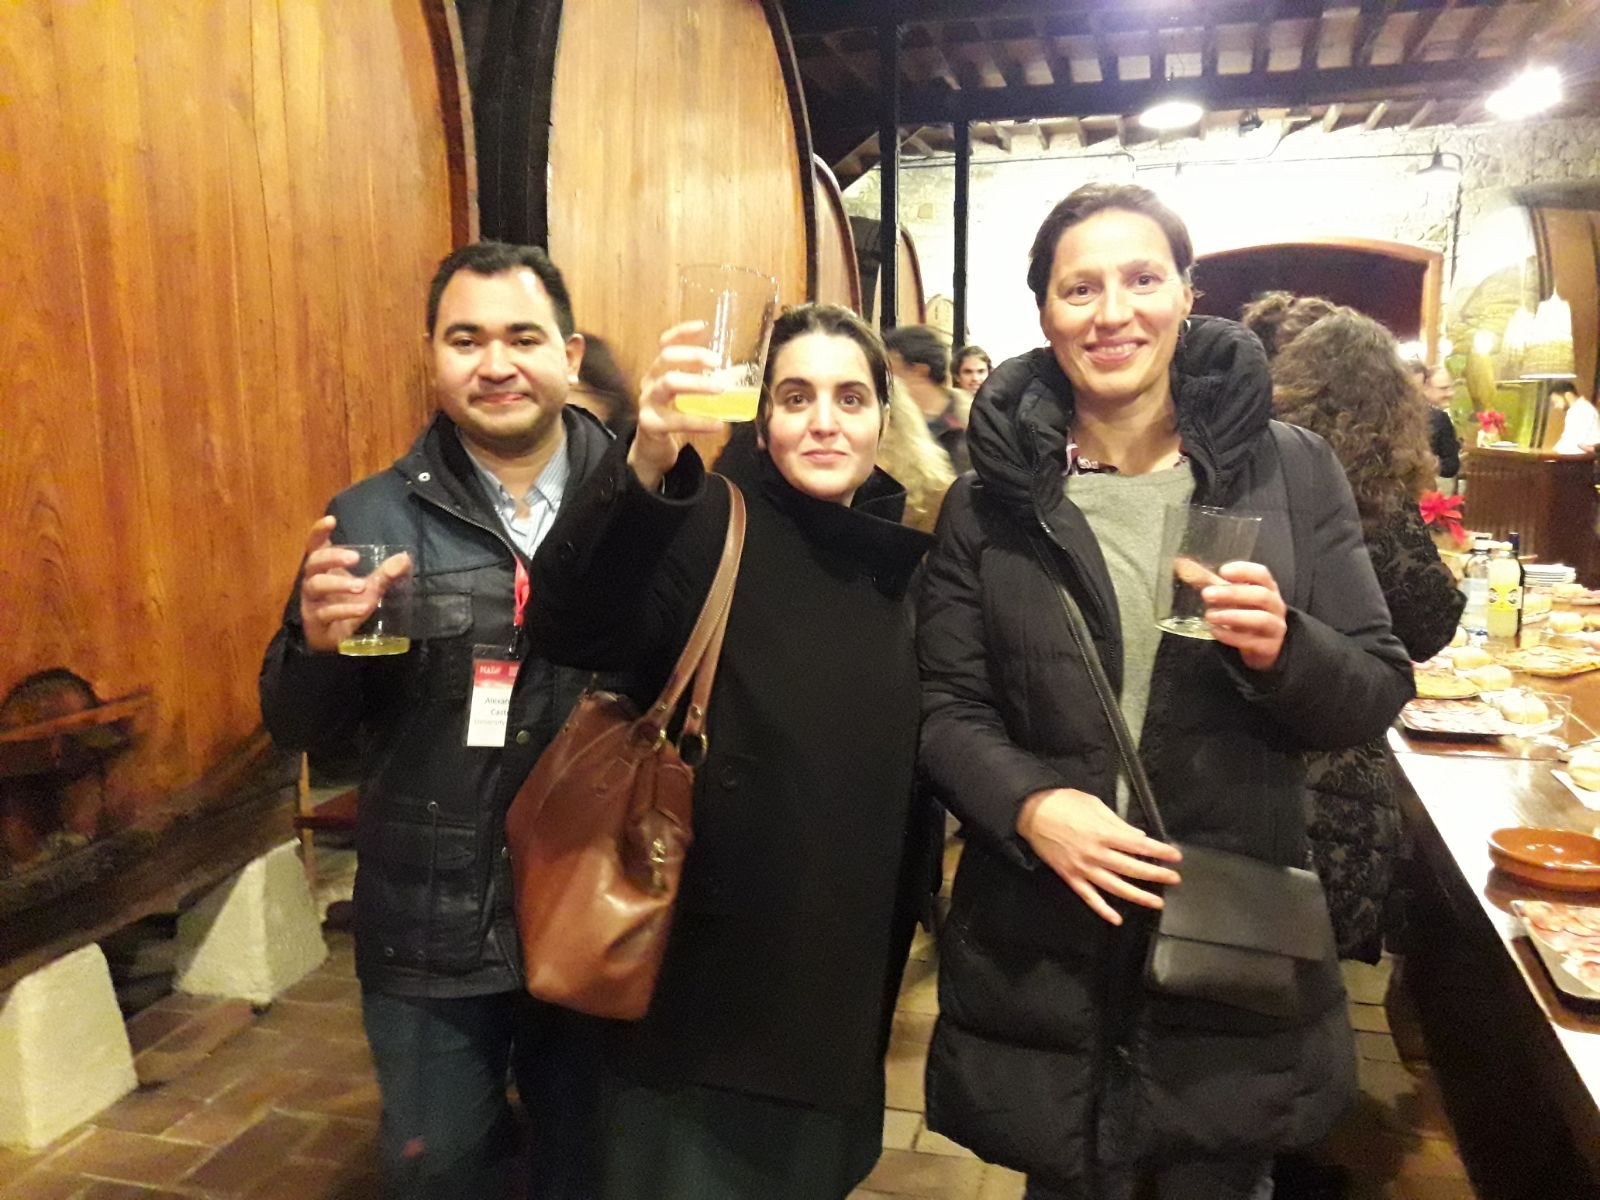 Our group tasting ''Sidra Asturiana''